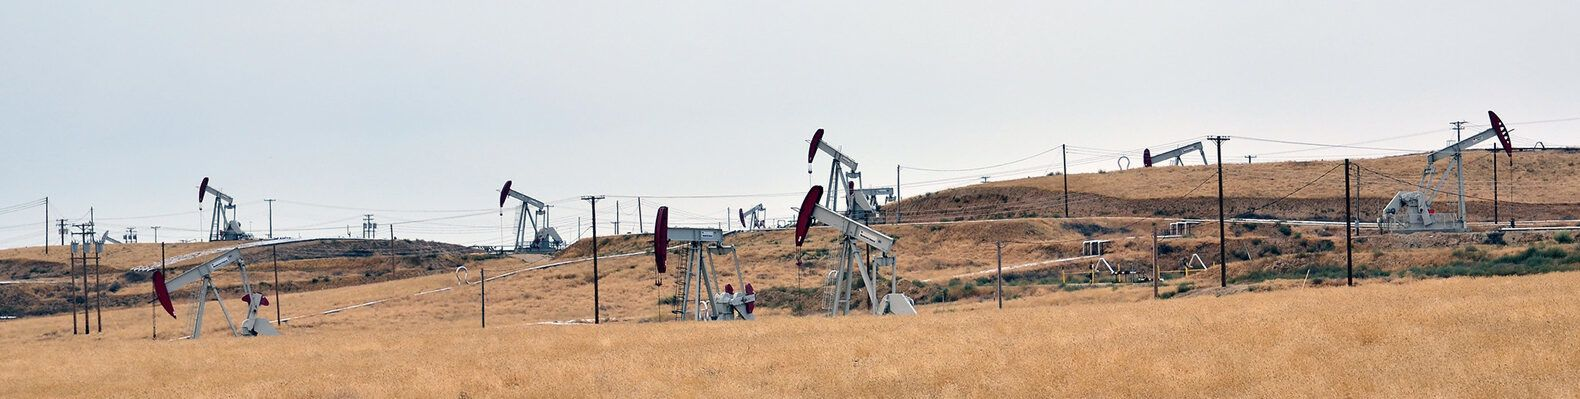 oil drilling machines on dry land in California